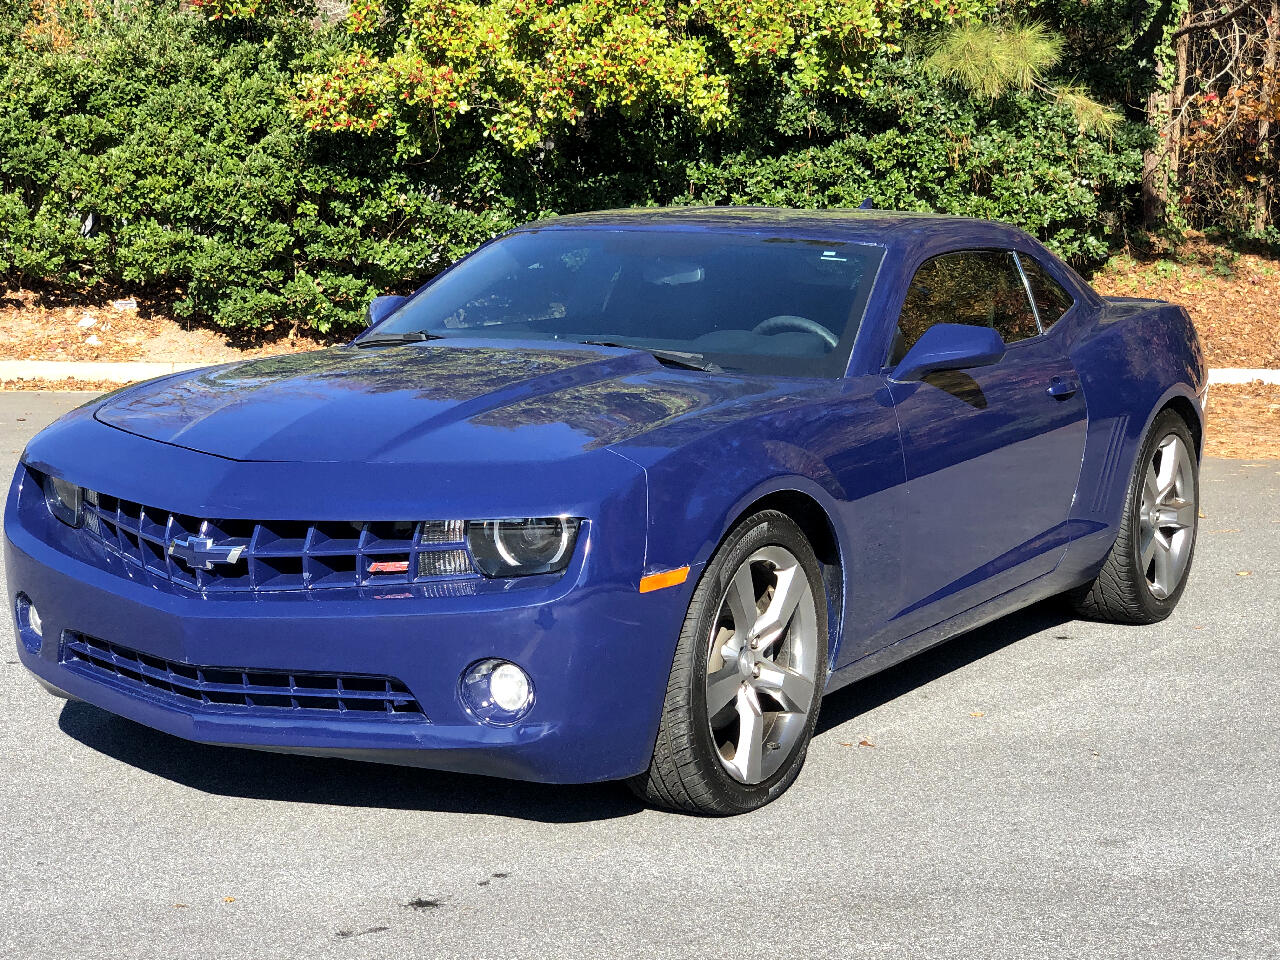 2012 Chevrolet Camaro Coupe 1LT